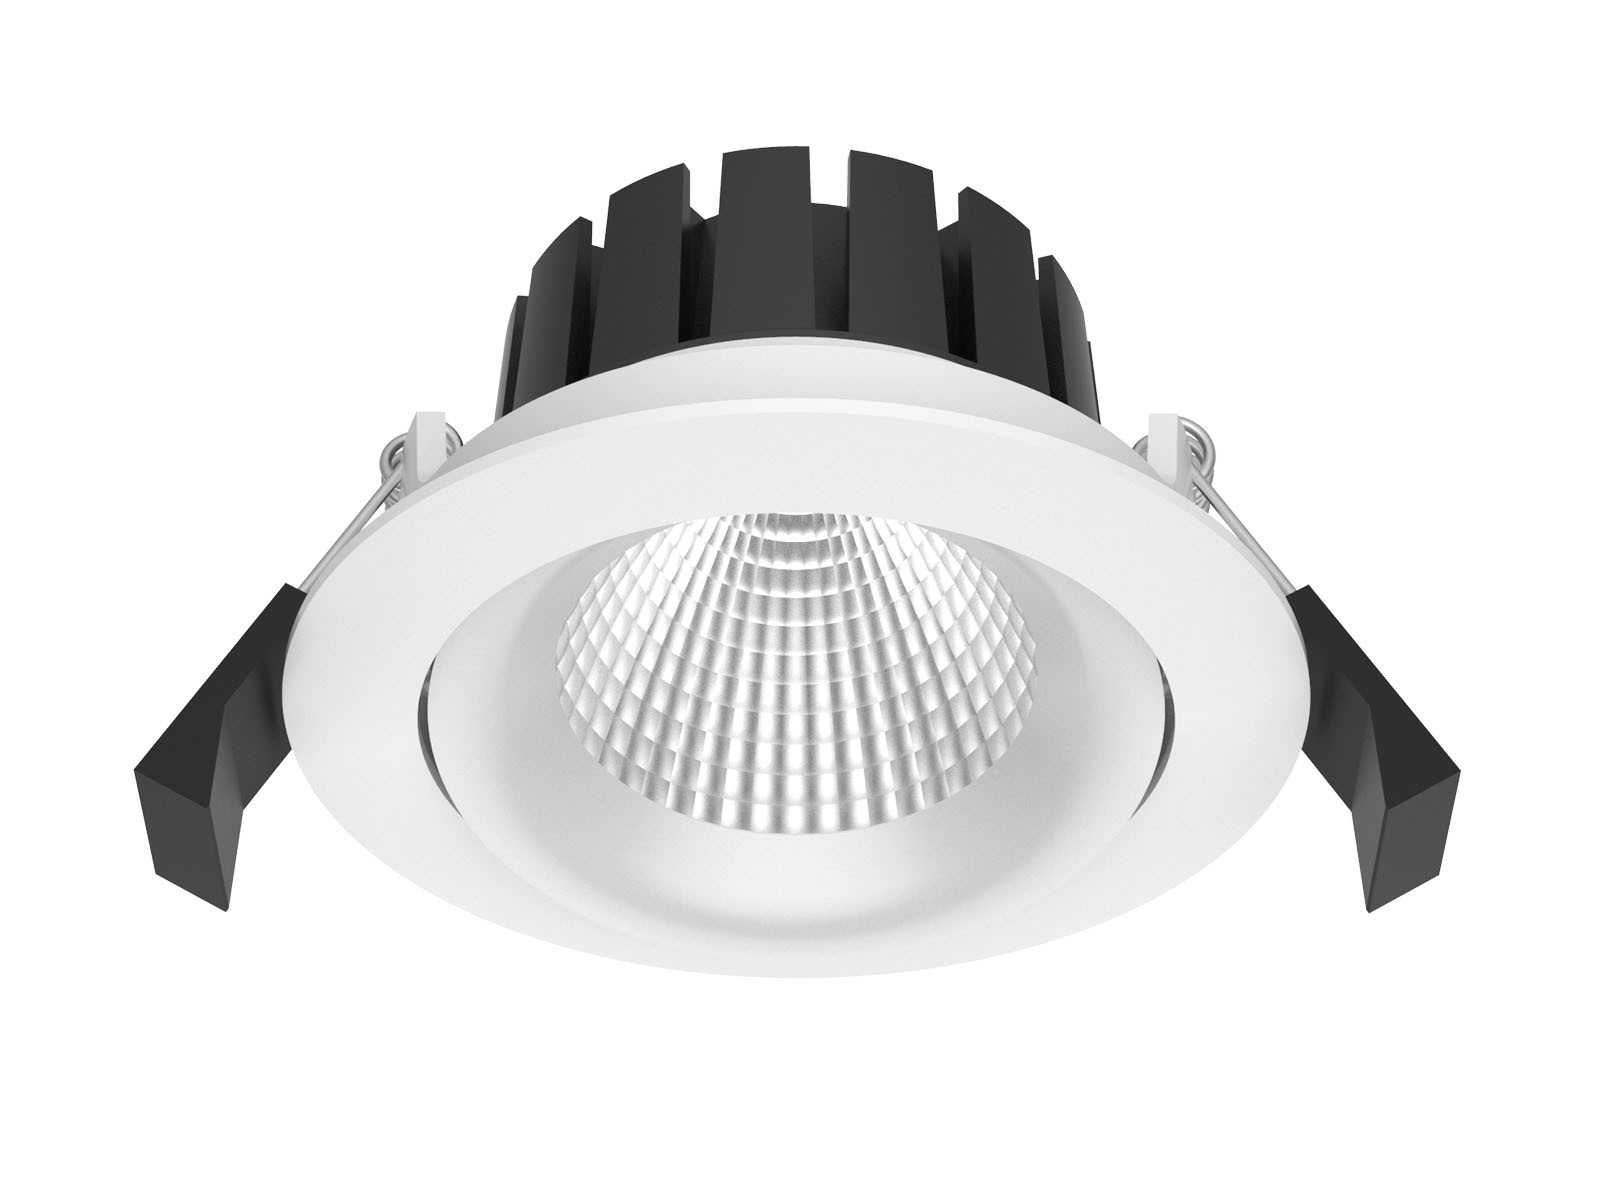 *NEW* 10W COB LED Gimbal Downlight - 3000K - White Frame